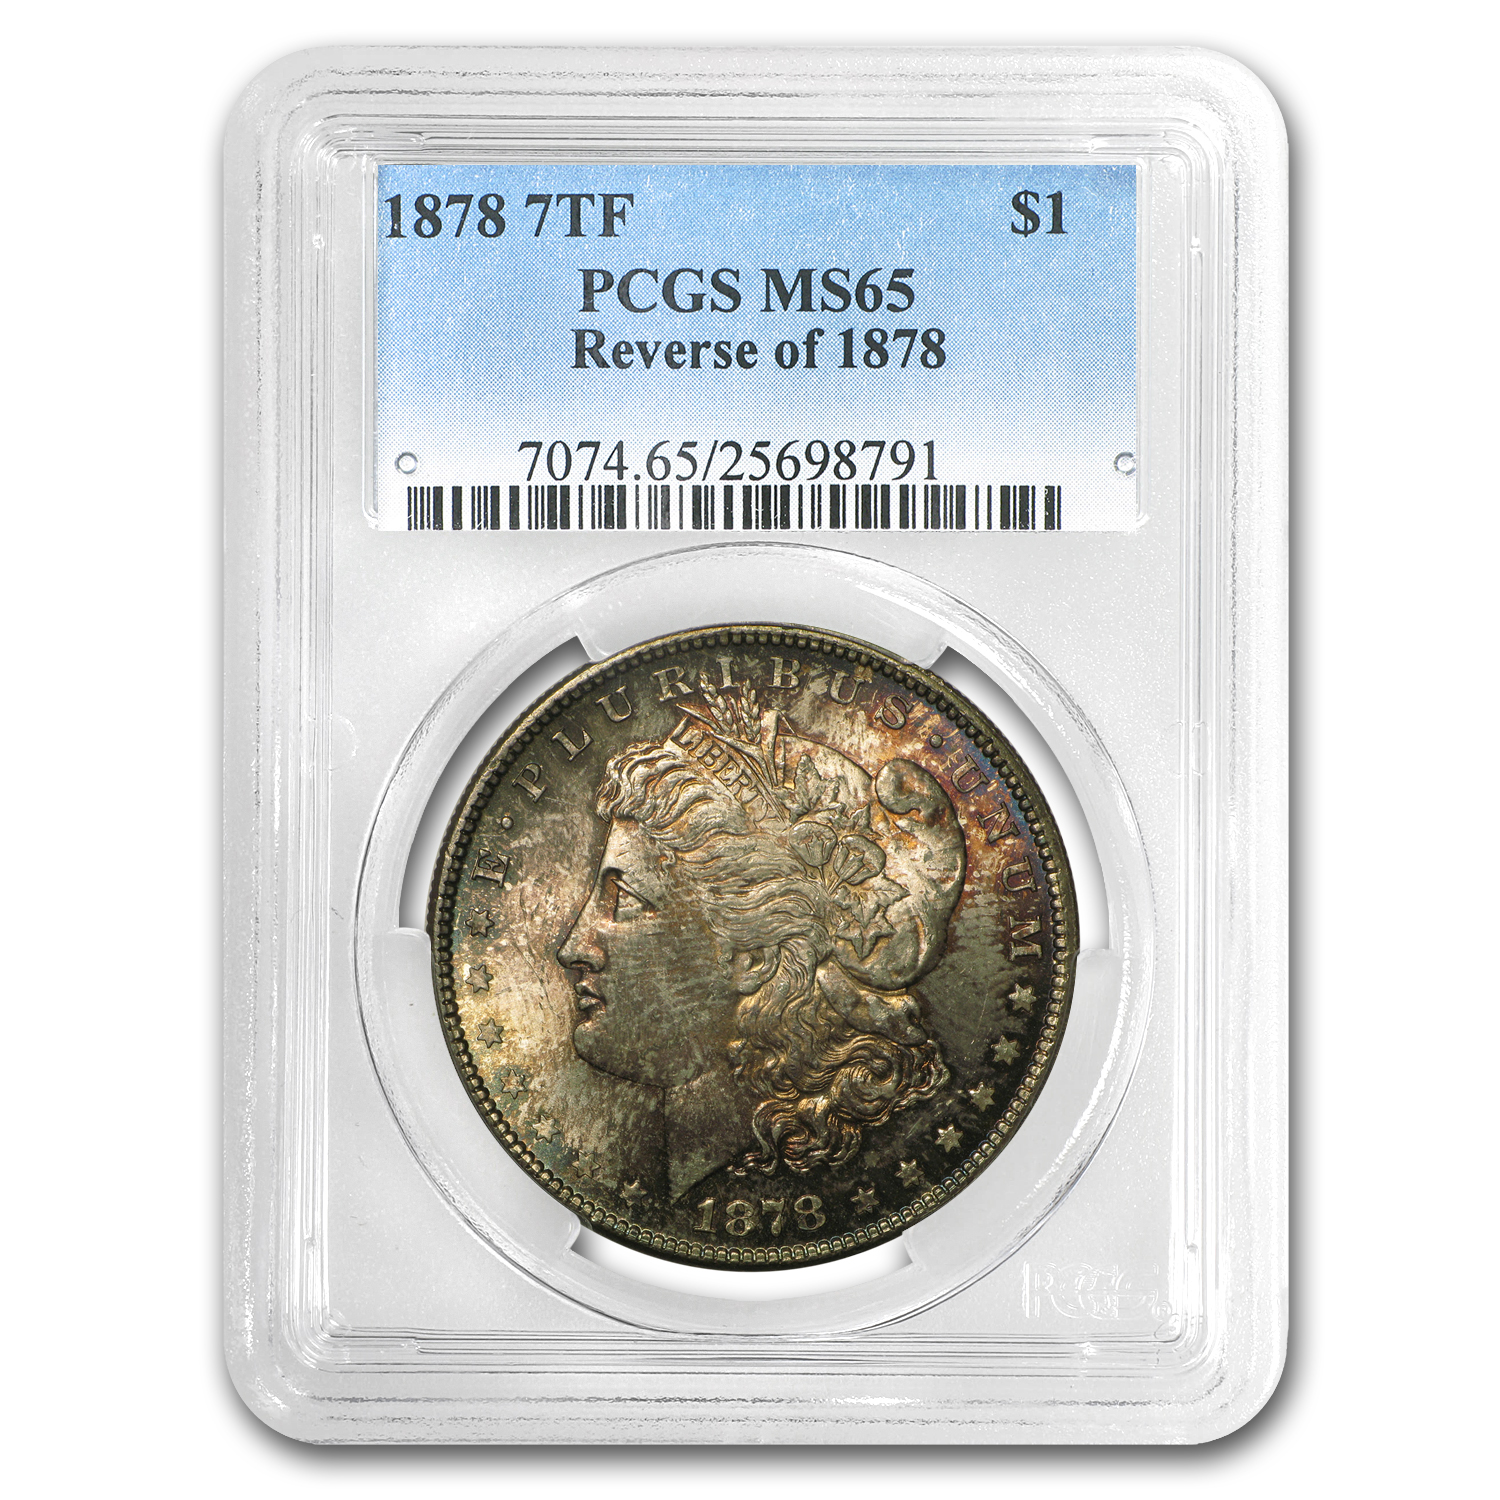 1878 Morgan Dollar 7 TF Rev of 78 MS-65 PCGS (Beautiful Toning)